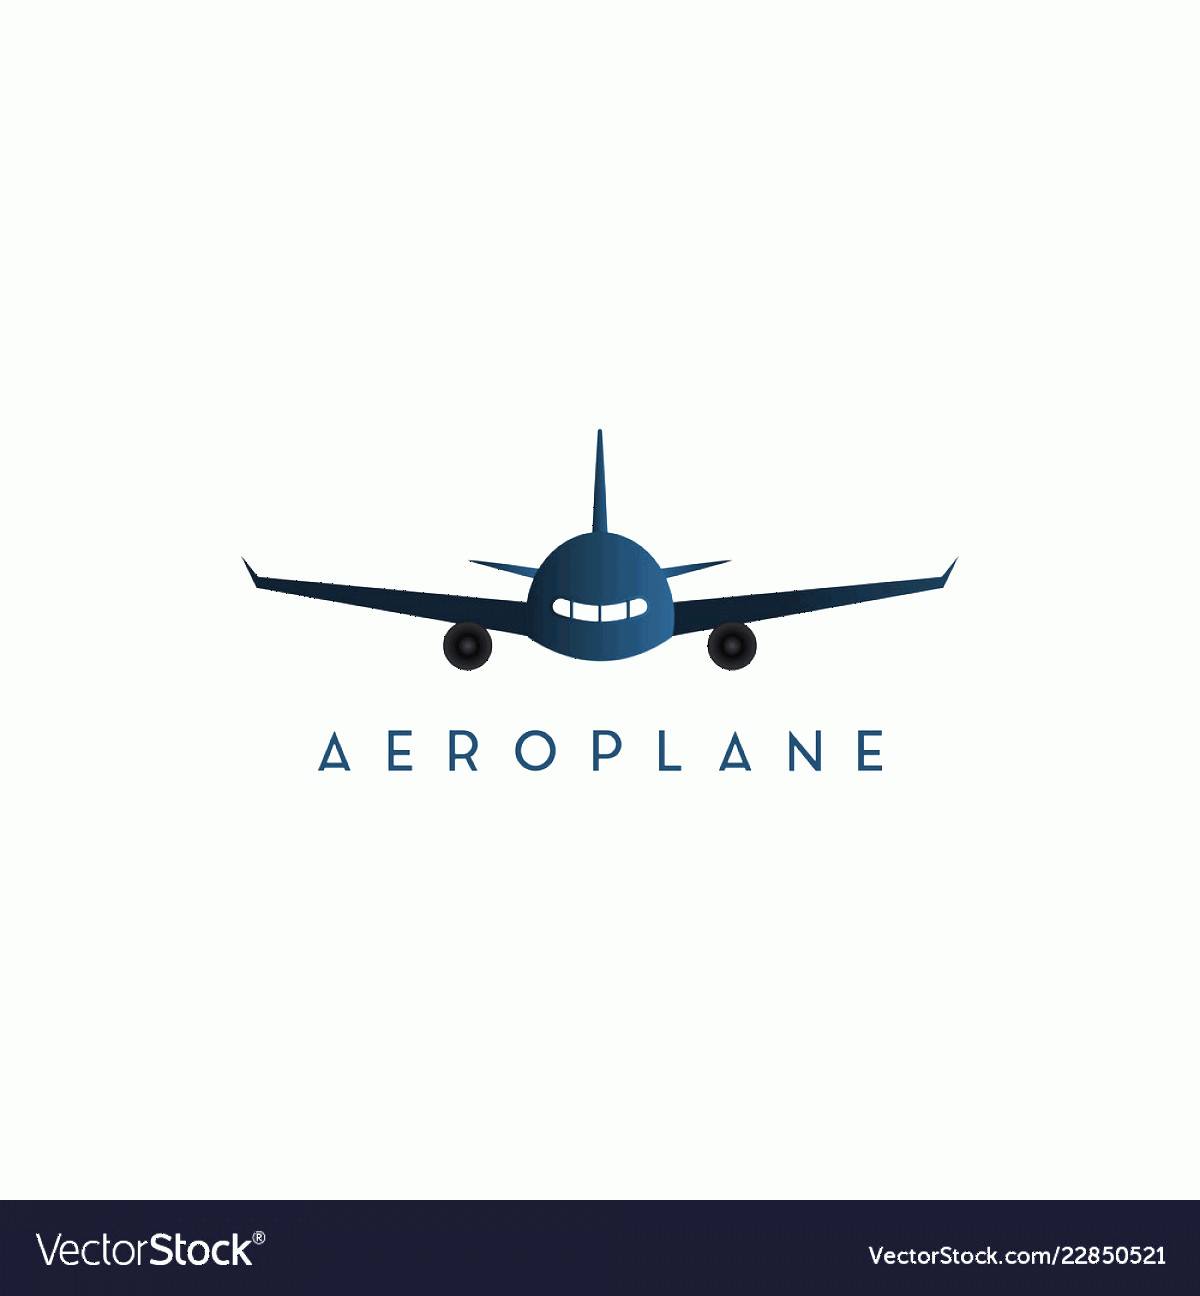 Aviation Vector Designs: Plane Front Side Graphic Design Template Vector